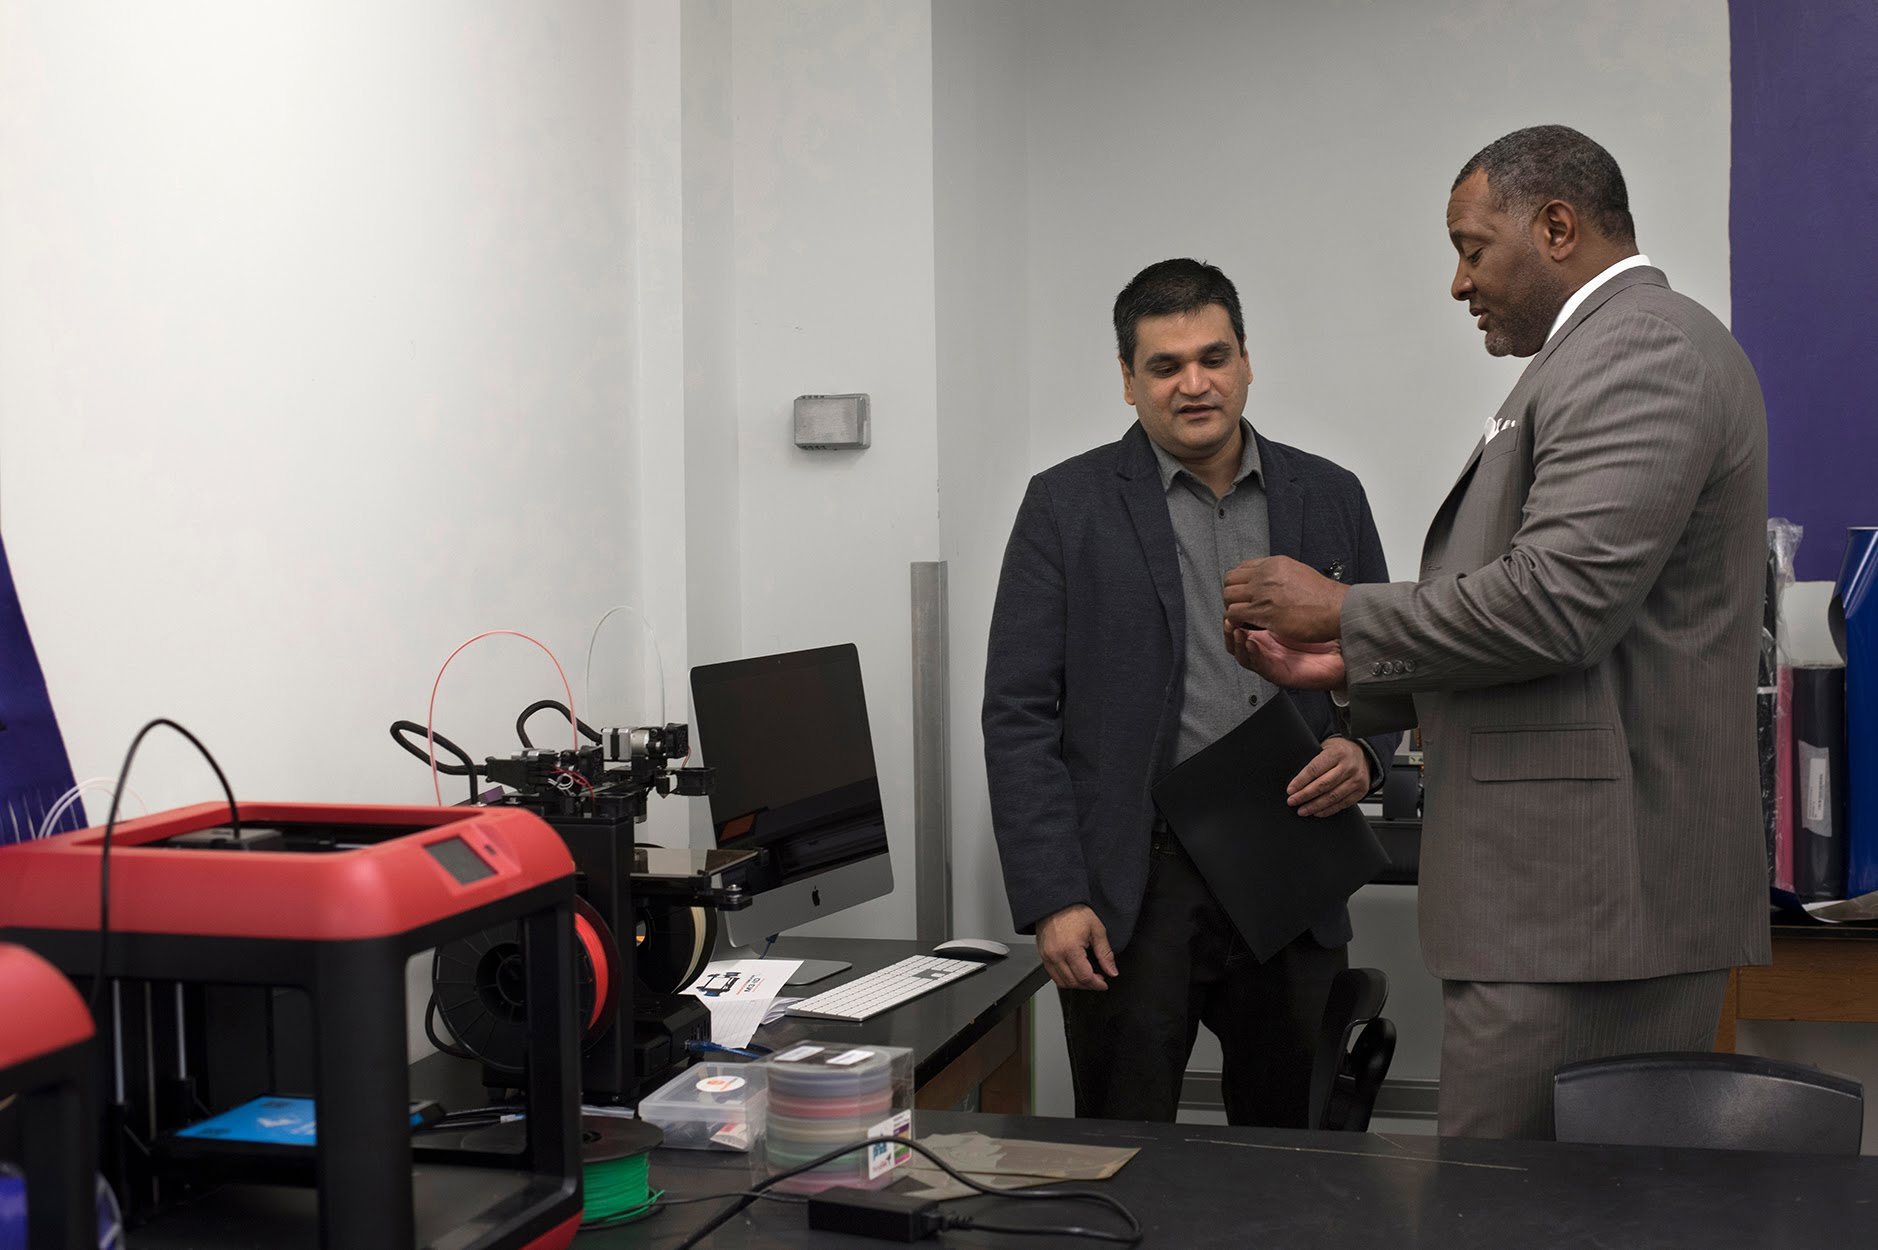 Superintendent Dr Anthony Hamlet inspects an object created by a 3D printer with PTSA president Ashish Badjatia at the grand opening of Google Maker Space at Obama Academy. (Photo by Martha Rial/PublicSource)